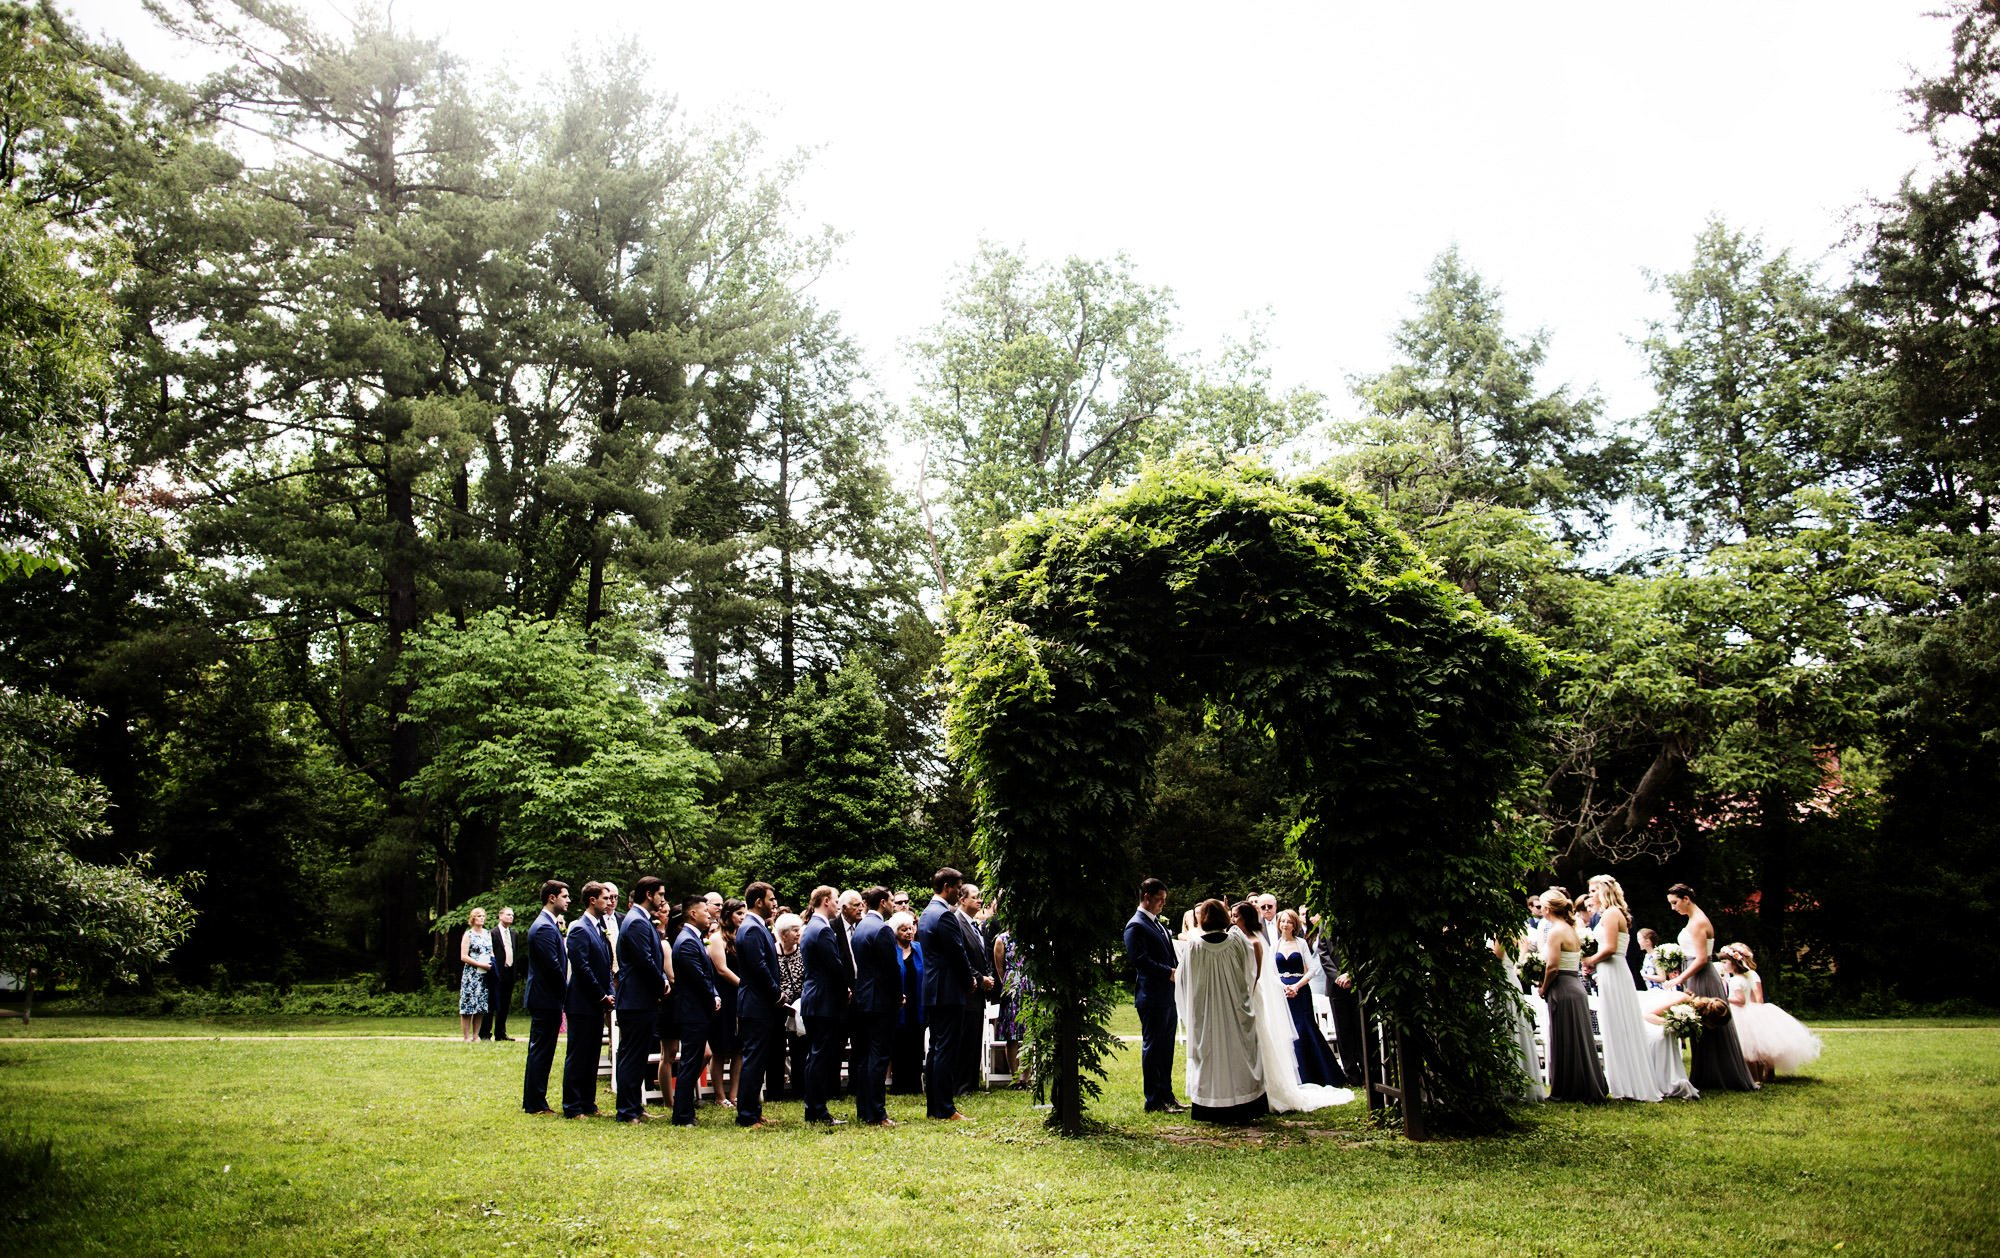 The wedding ceremony on the grounds of Hendry House in Arlington, VA.